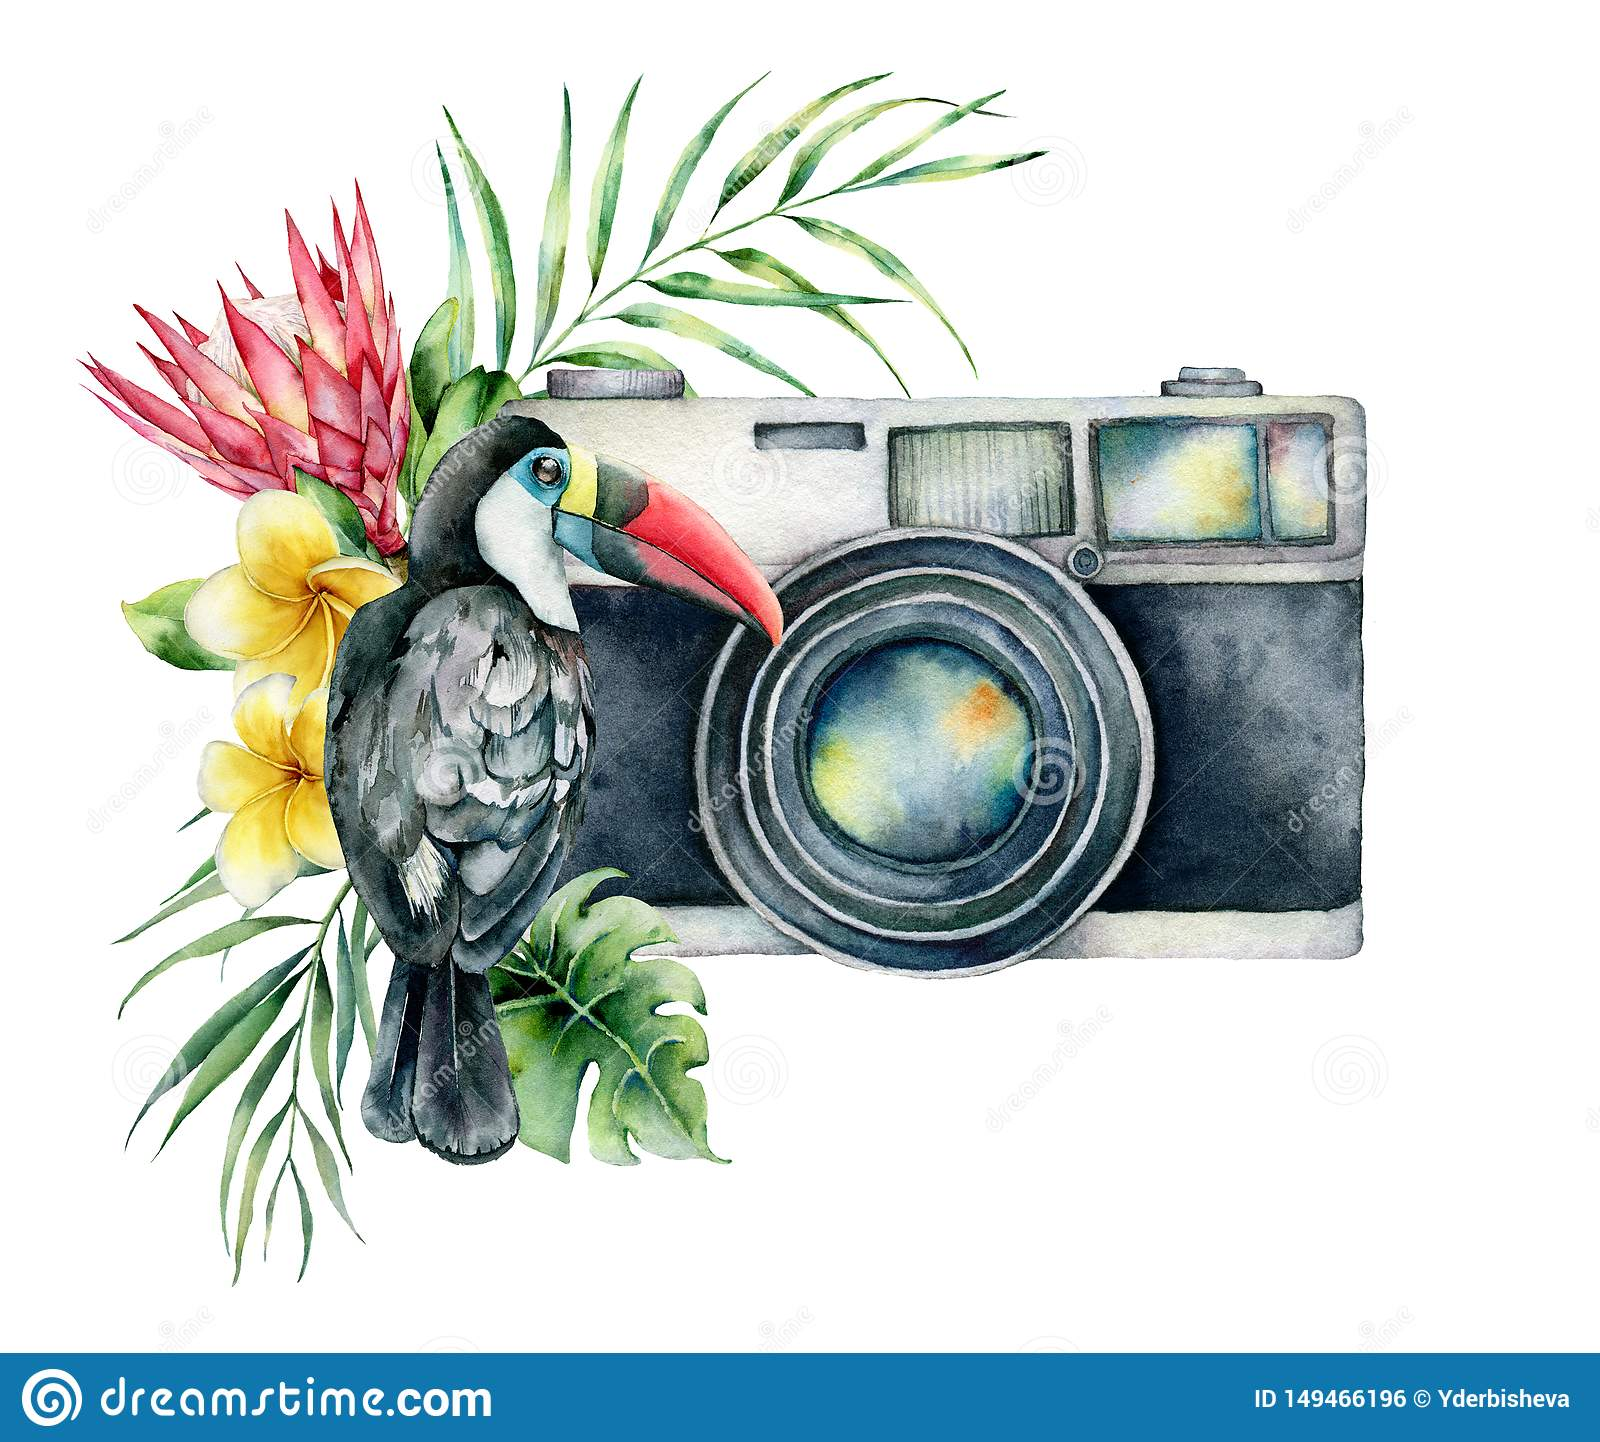 Watercolor card composition with camera, flower bouquet an toucan. Hand painted photographer logo with protea and leaves